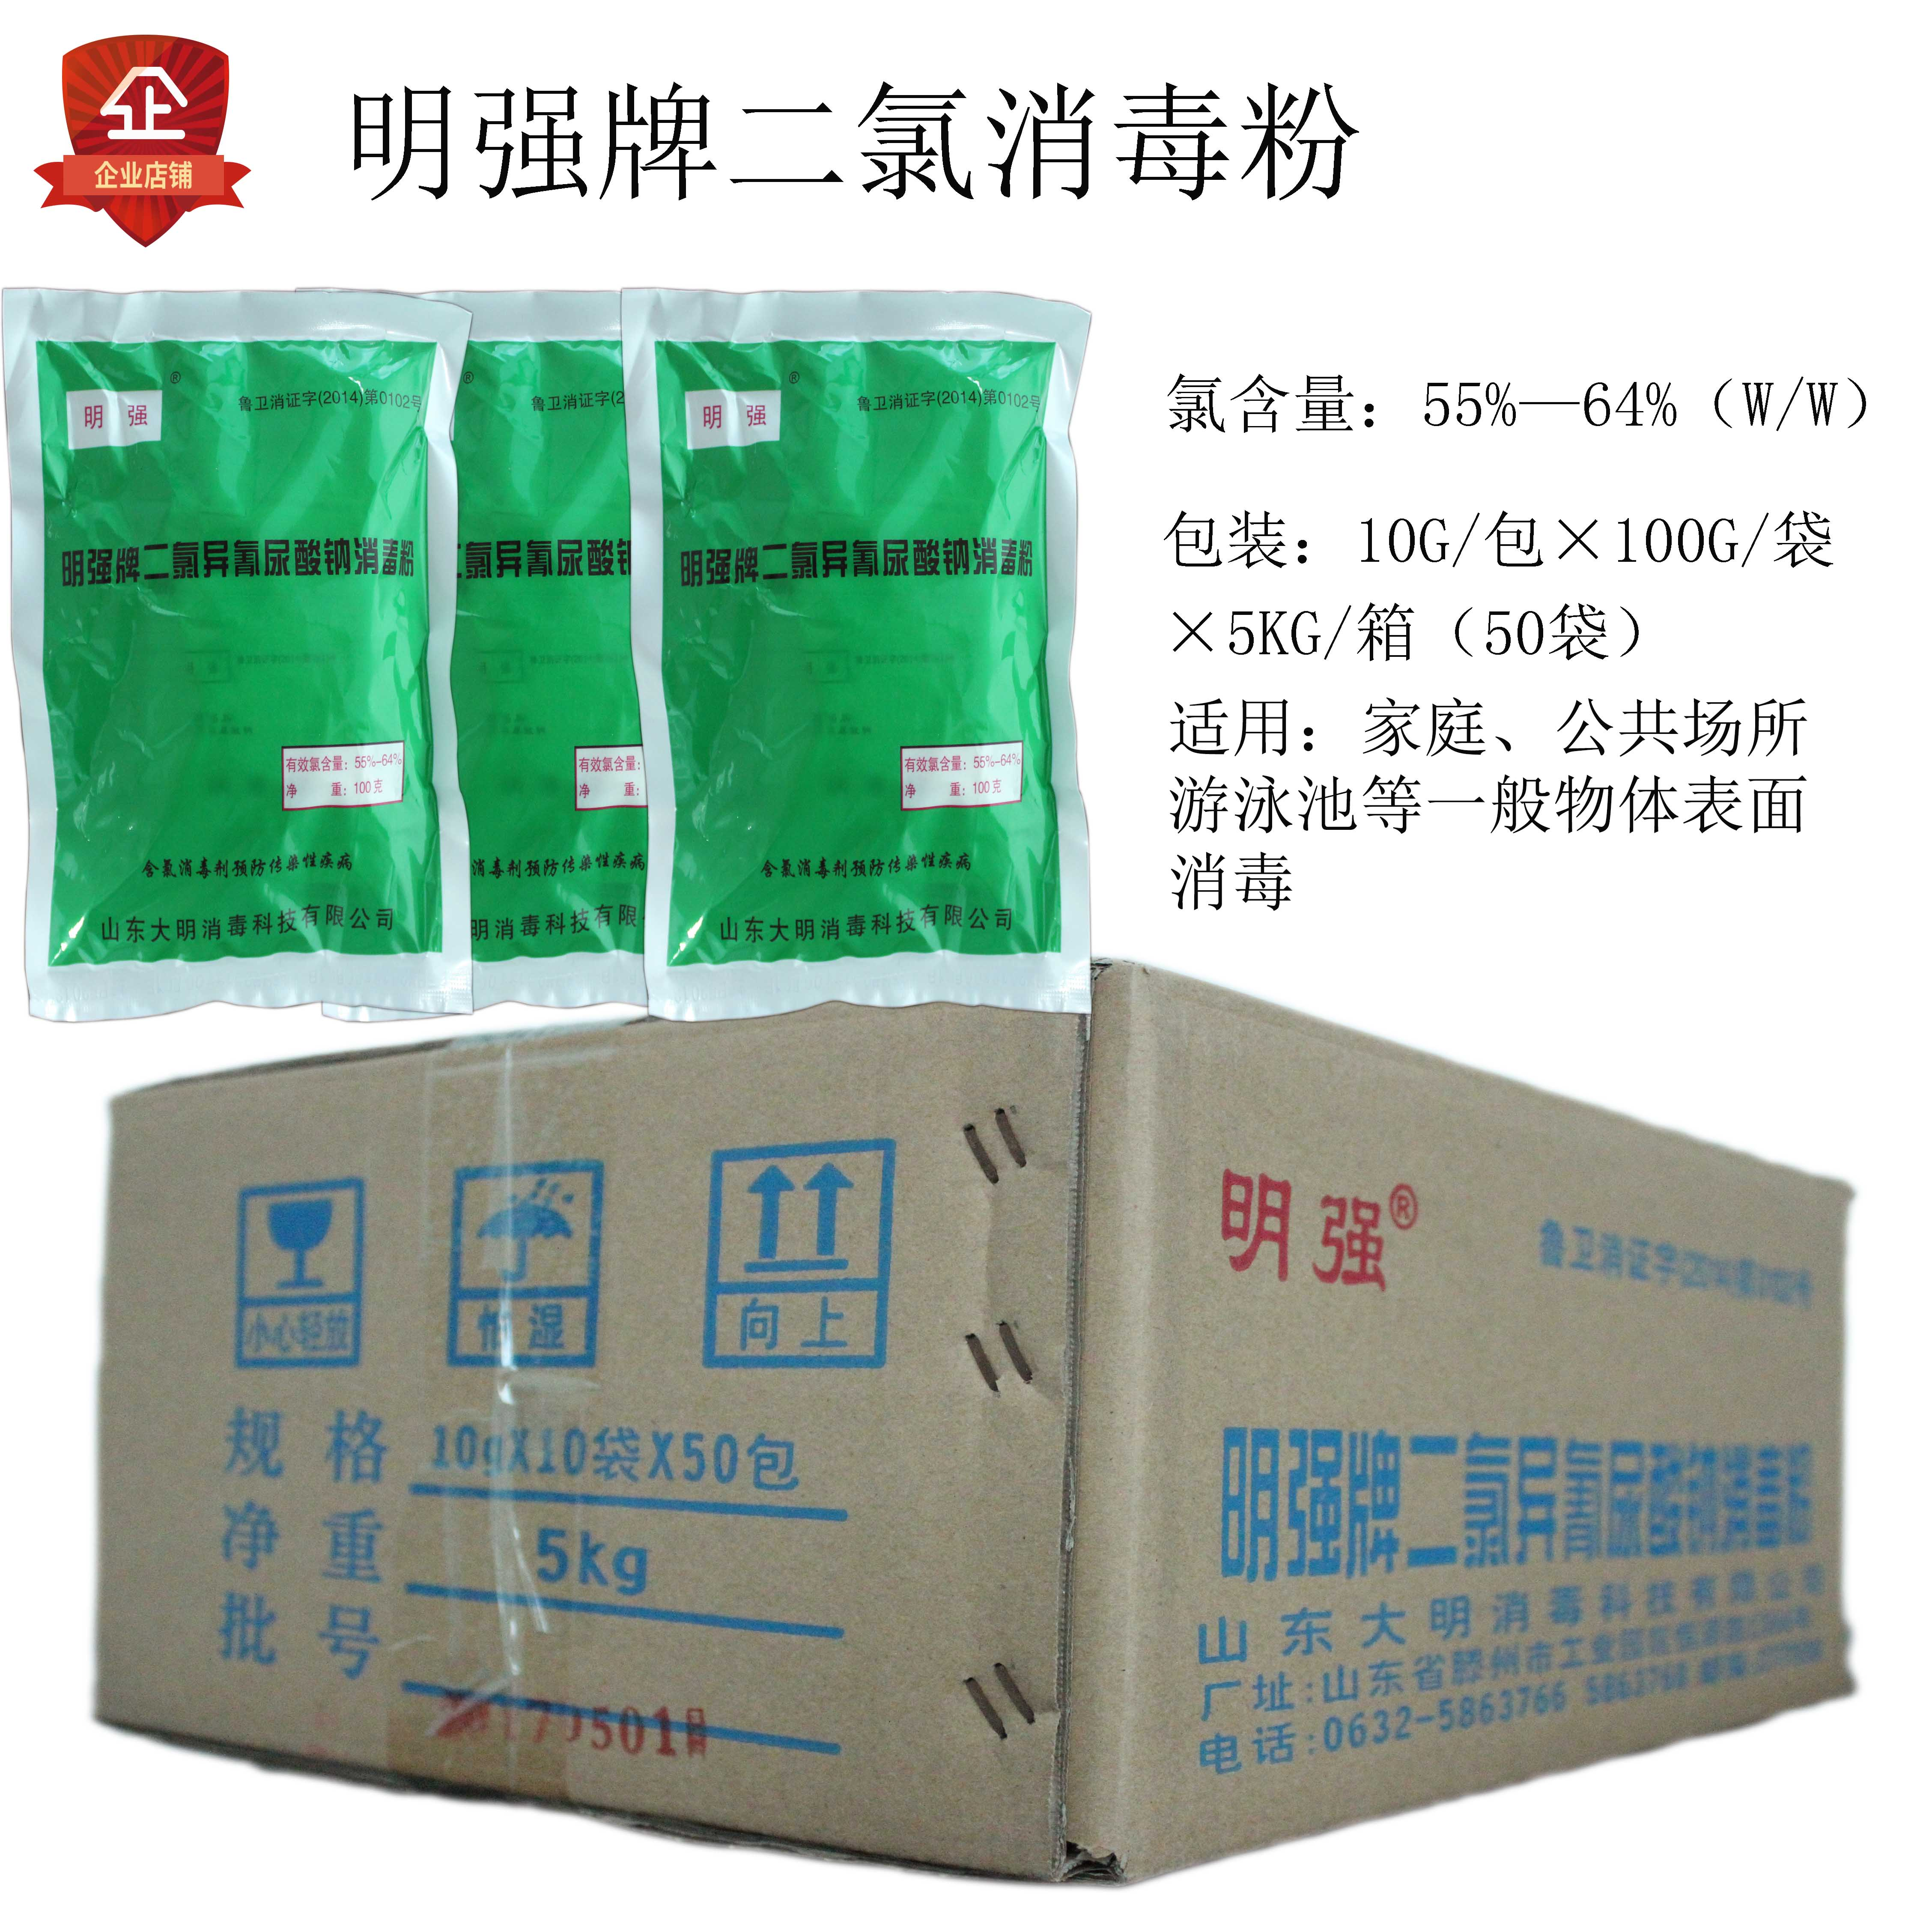 Mingqiang brand disinfection powder small package bleaching deodorizing disinfectant environment ground tableware cleaning school hospital family